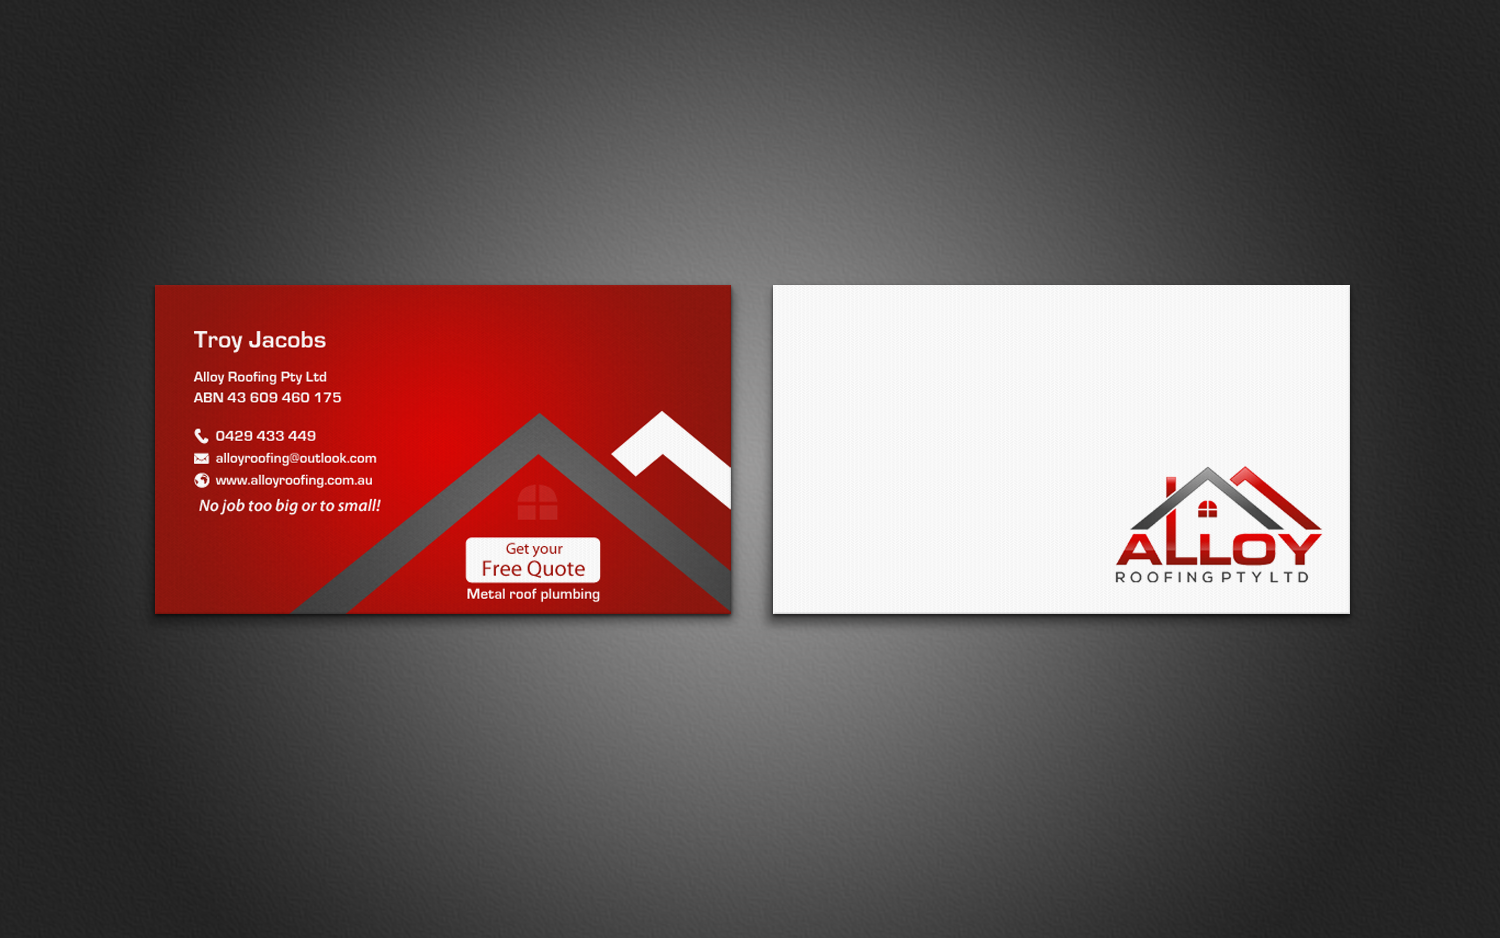 Modern professional business business card design for alloy business card design by chandrayaaneative for alloy roofing pty ltd design 8486064 reheart Image collections